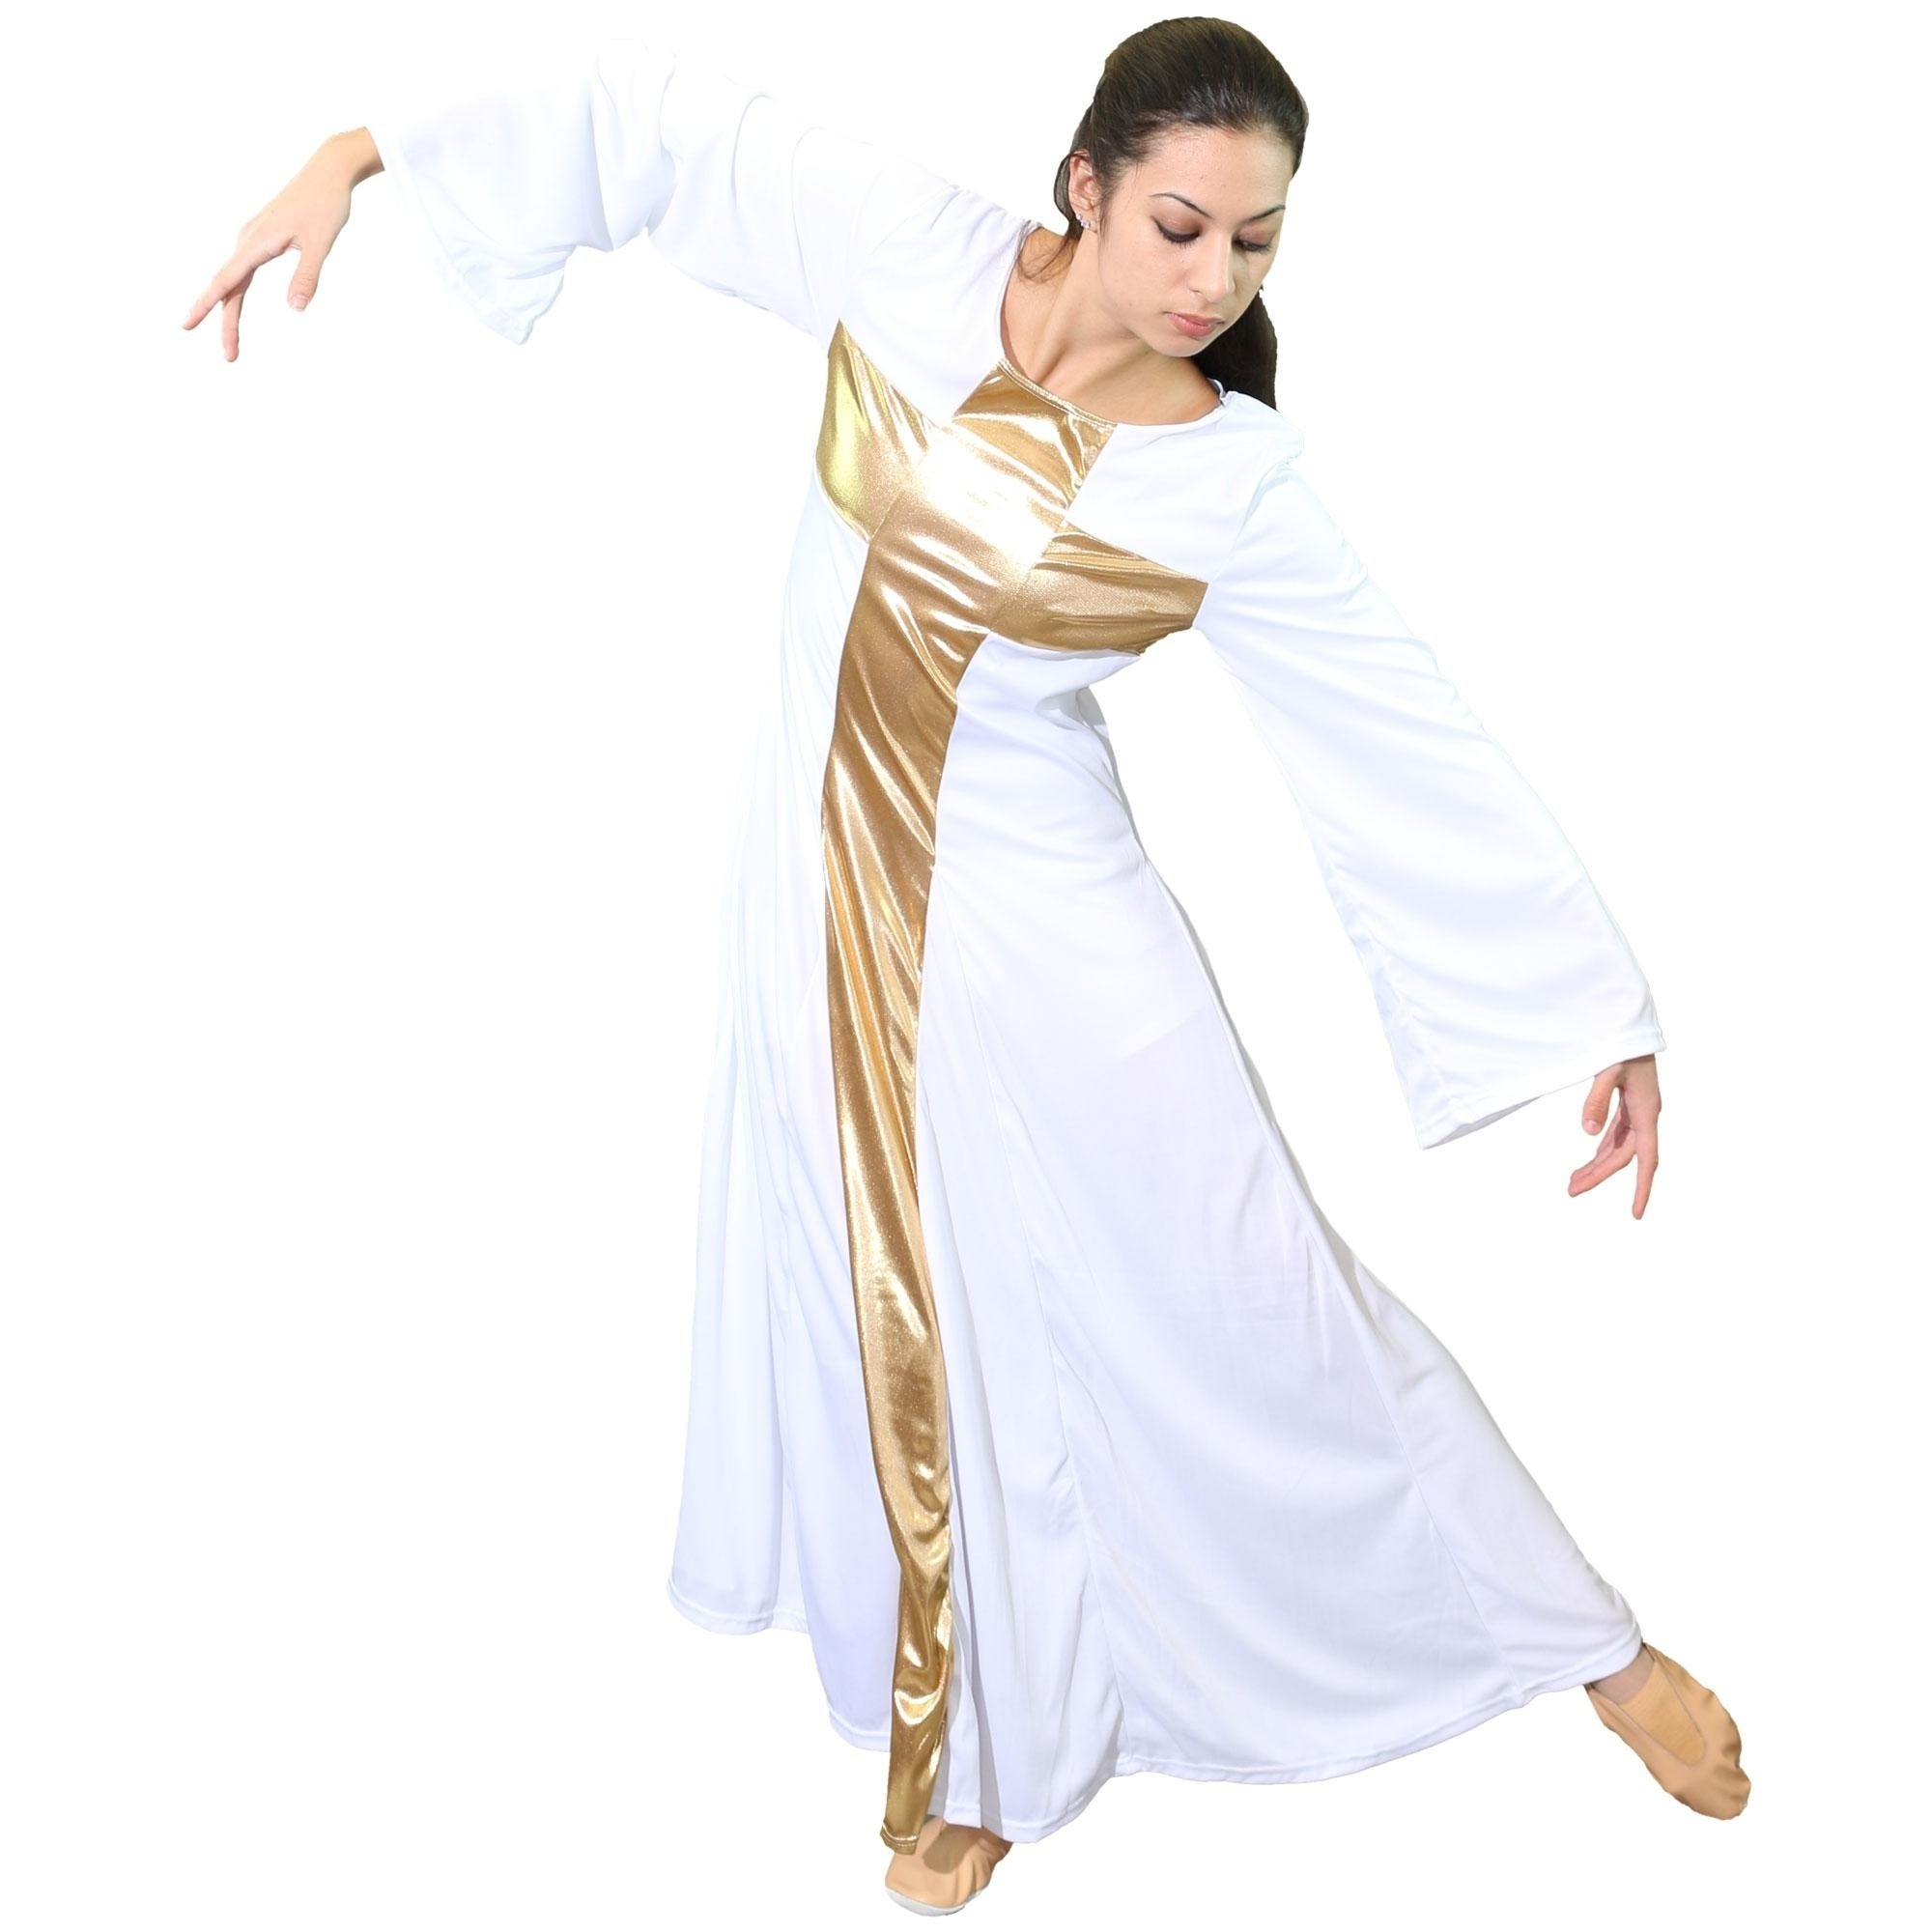 Danzcue Praise Dance Cross Long Dress